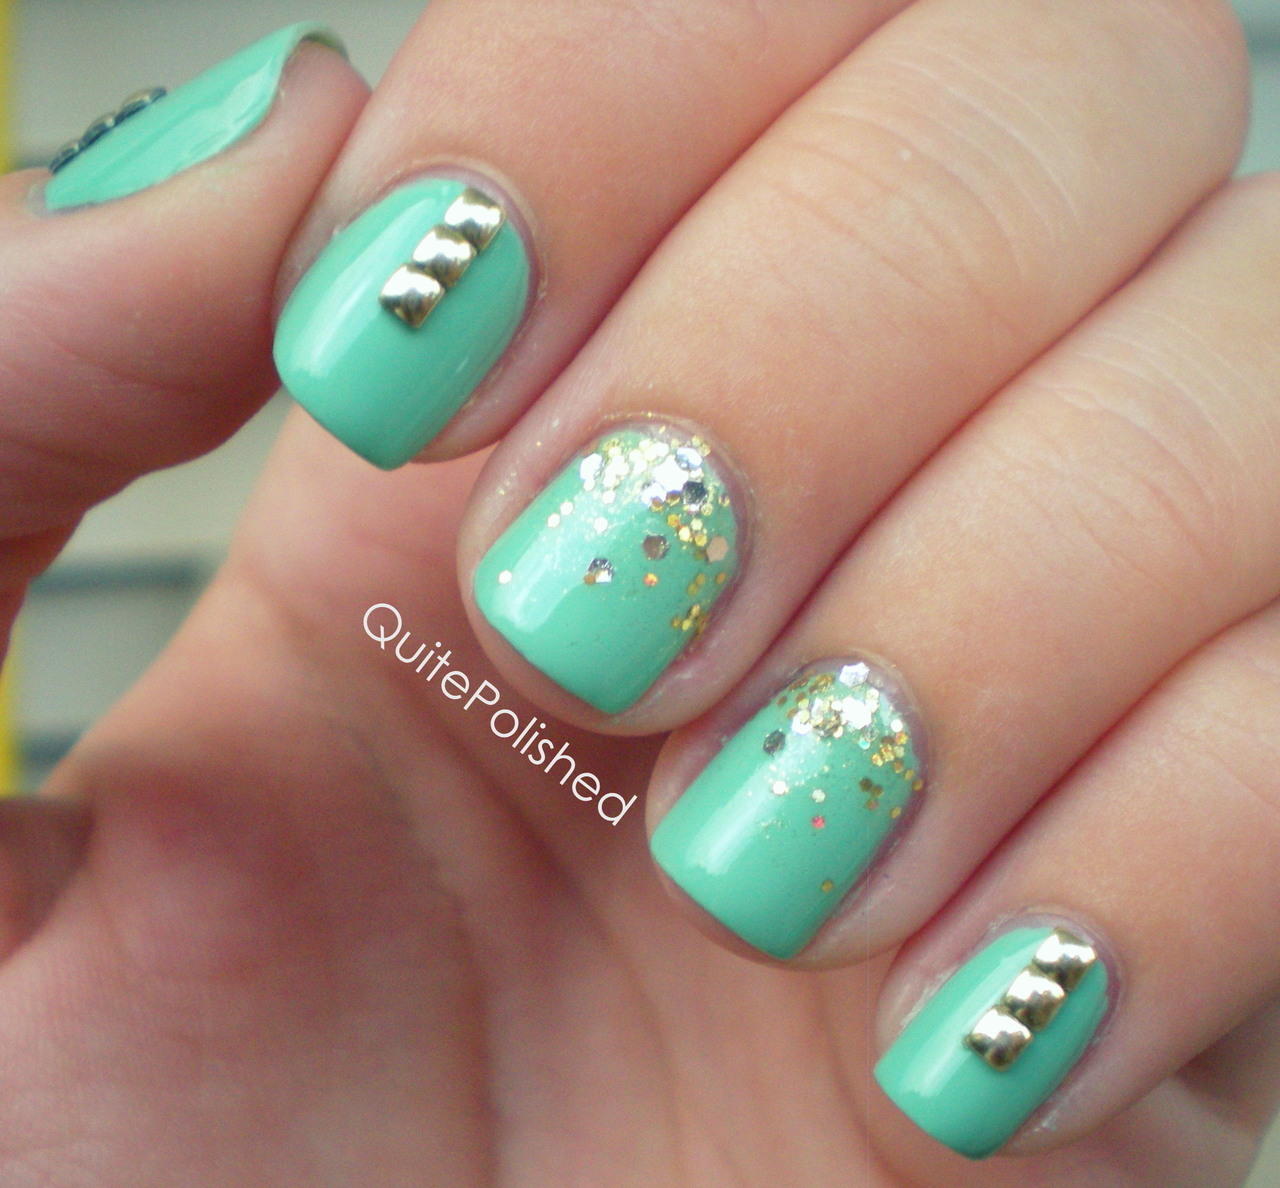 "meekz0411:   SUPER CUTE  quitepolished:  Oh hey der sexy badass nails. How you doin'? Okay I'm done. Maybe. Gosh I love these so much. This nail art features 2mm gold square studs from the Born Pretty Store.  When I first got into nail art the thought of attaching something to my nail and them not being completely smooth kind of freaked me out, but eventually I grew to love the way studs looked! I've been wanting my own for a while now so I was super excited to try these out! Born Pretty Store has square studs in two sizes (2mm and 4mm) and two colors (silver and gold). I wasn't quite sure how to apply these. I tried searching for directions but didn't really find any. The Born Pretty website says to apply your base color, place the studs on, then seal with a top coat. Because these were so tiny I knew I wouldn't be able to apply these to a wet surface and not smudge the polish. I decided to paint my base and apply a topcoat then wait for my nails to dry completely. I used tweezers to pick up the studs then with a toothpick I applied a tiny amount of nail glue to the back of the stud and placed it on my nail. I used the end of a bobby pin to do any adjustments because the round edge stood less of a chance dinging the polish. So I may have done it the ""wrong"" way but it worked for me. I chose nail glue over some sort of clear coat because I knew it would give me a more secure hold. The corners on these are slightly rounded so they wont snag, which is really nice. The base is Lex Cosmetics Cayman Caban and the gold glitter is Serum No. 5 Girl's Gotta Eat.  If you make a purchase from the Born Pretty Store you can use the coupon code UGJ61 for 7% off your entire purchase, plus they always ship free worldwide. :) *** The studs featured in this post were sent to me for an honest review. All opinions expressed in this post are my own."